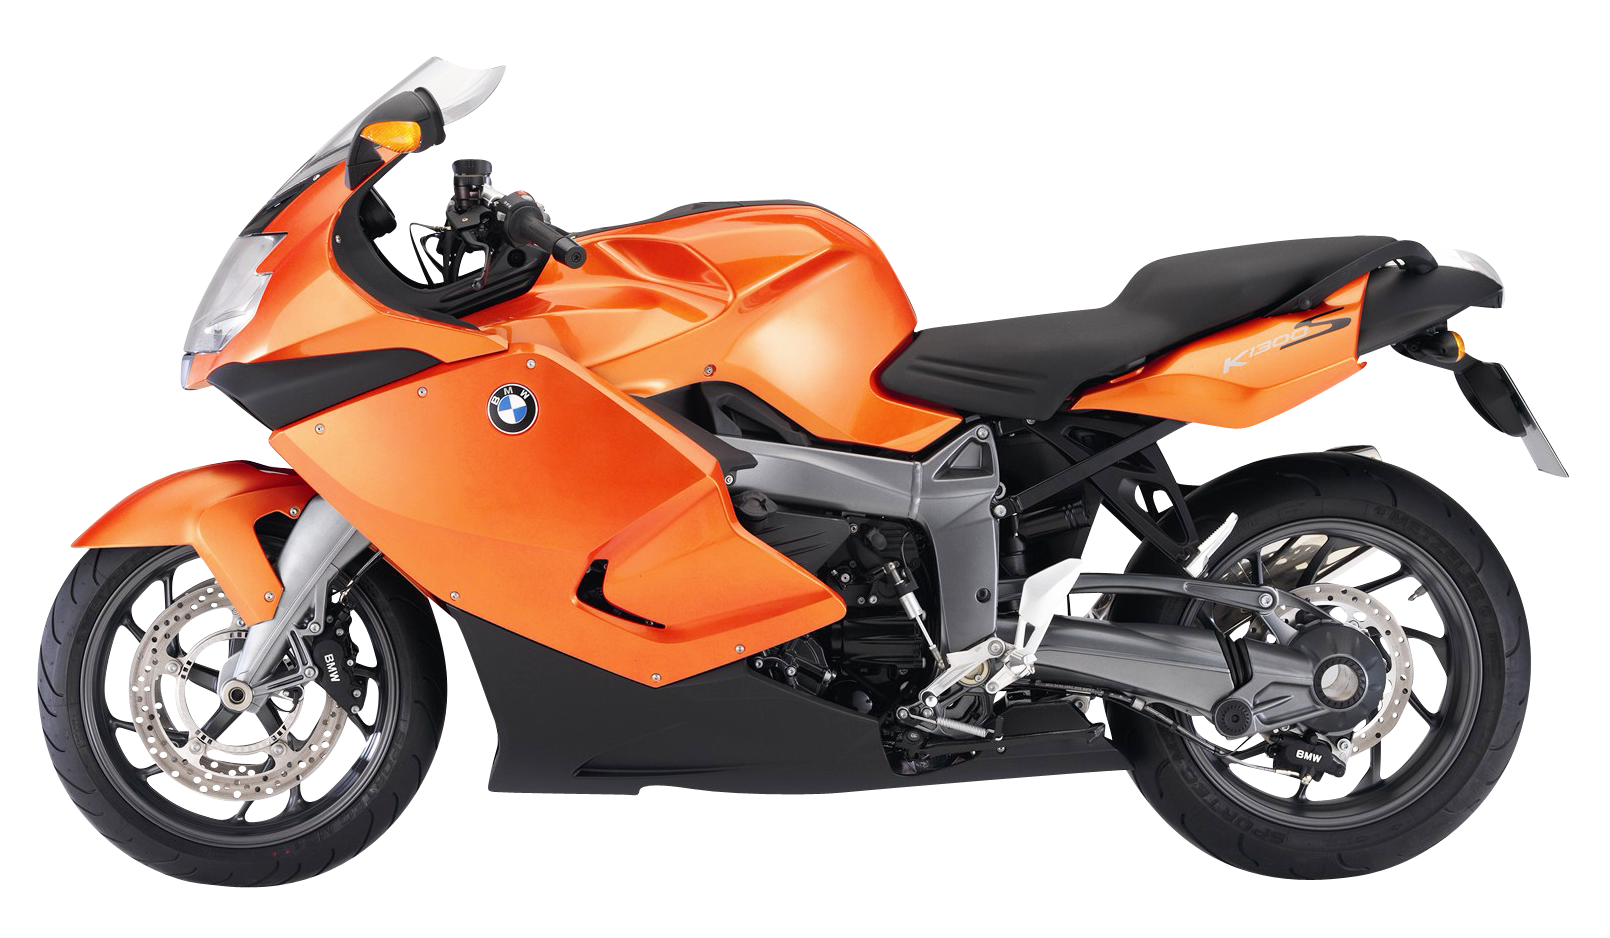 Bmw k s bike. Motorcycle clipart sport motorcycle